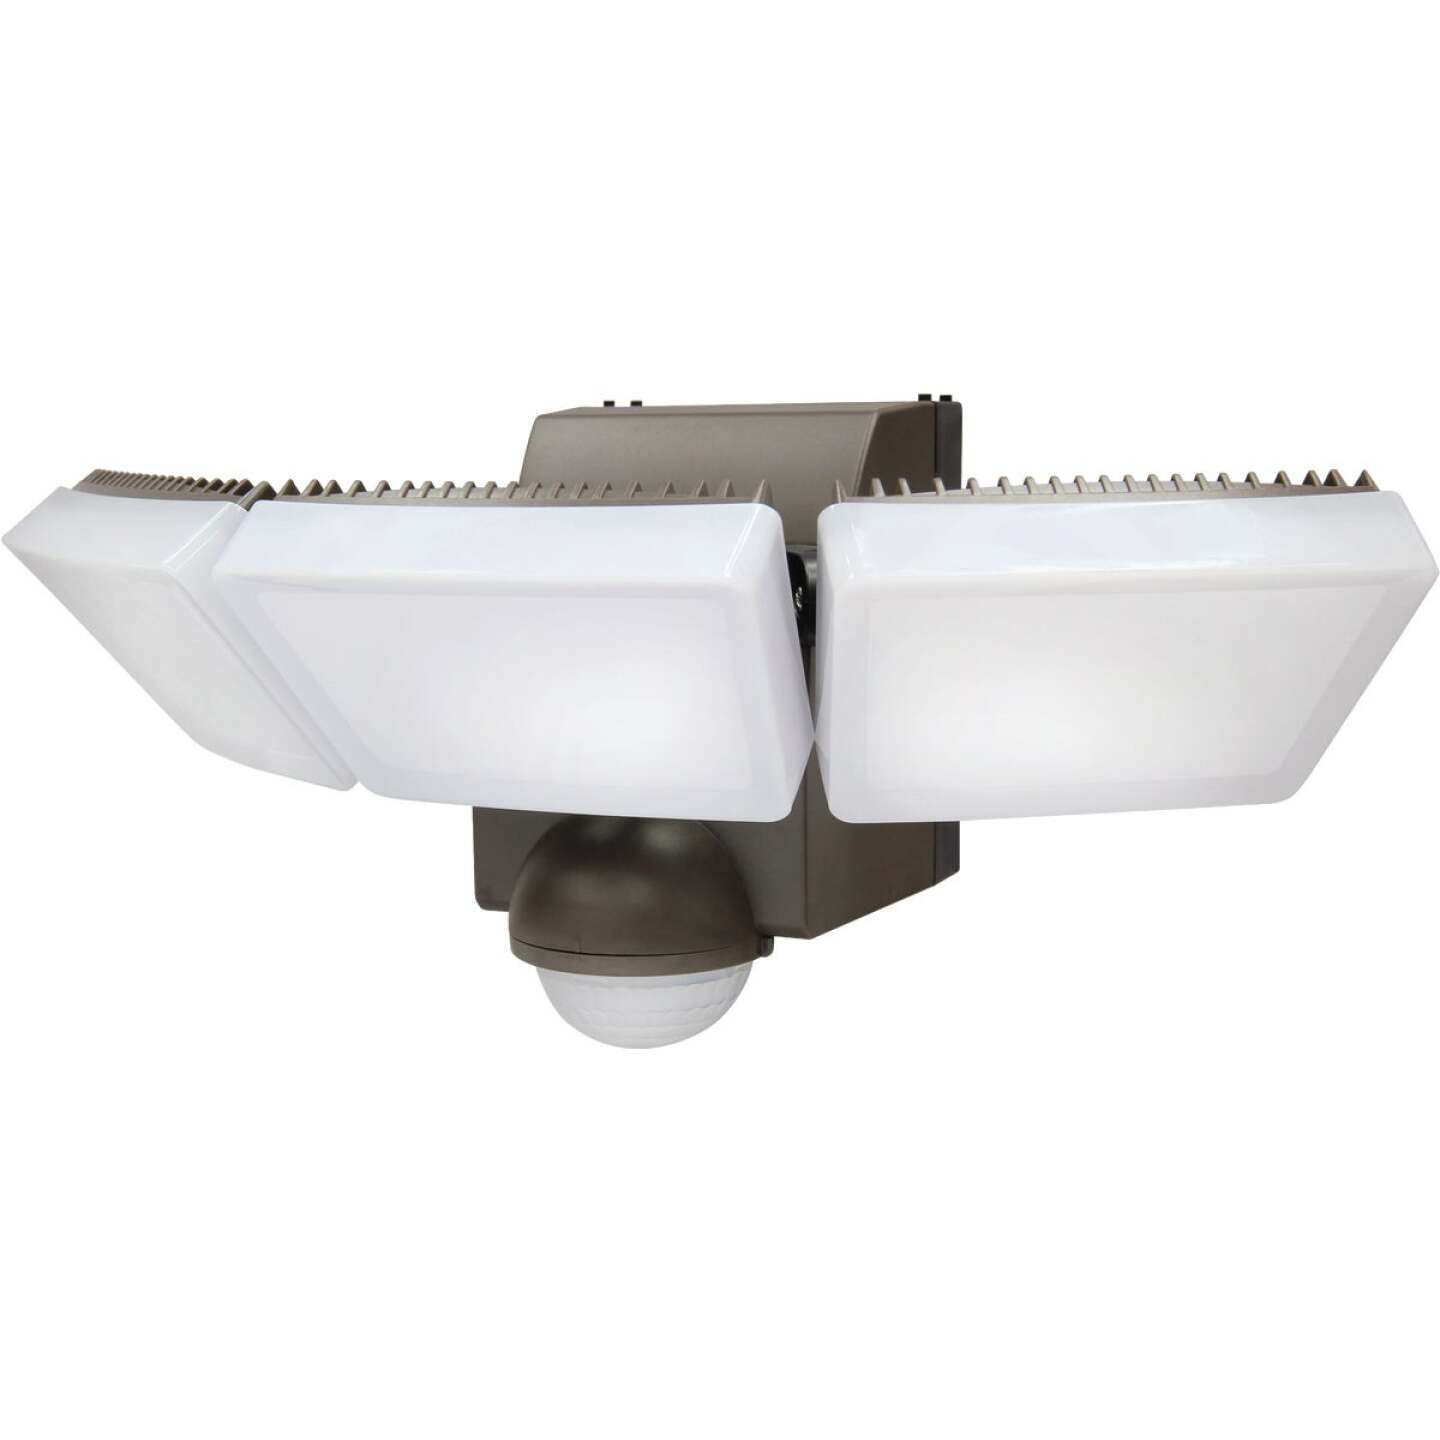 IQ America Bronze 1200 Lm. LED Motion Sensing Battery Operated 3-Head Security Light Fixture Image 1